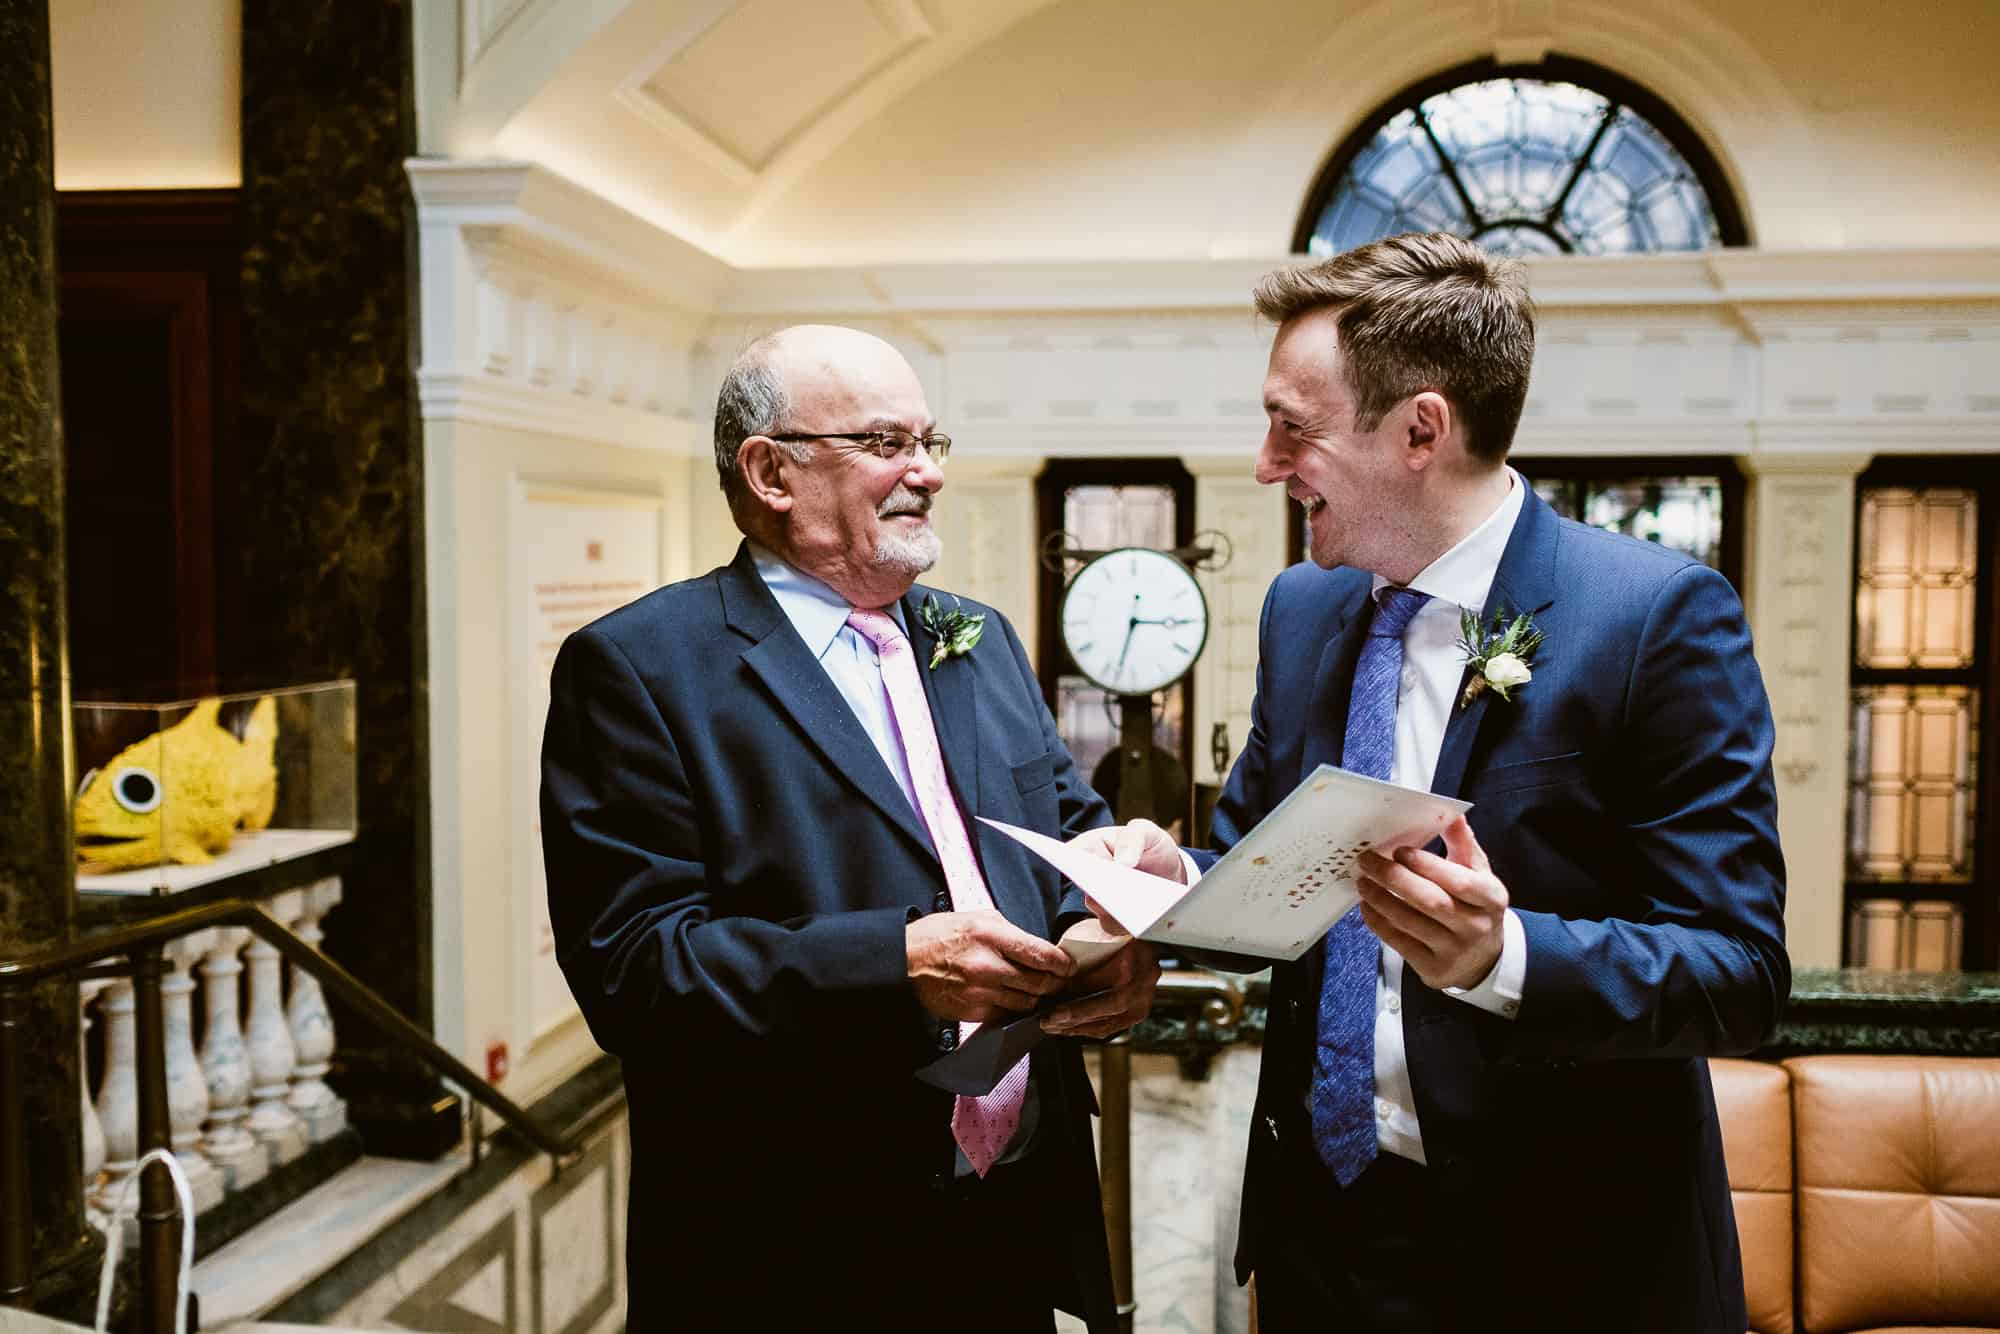 bethnal-green-town-hall-hotel-wedding-photography-0010